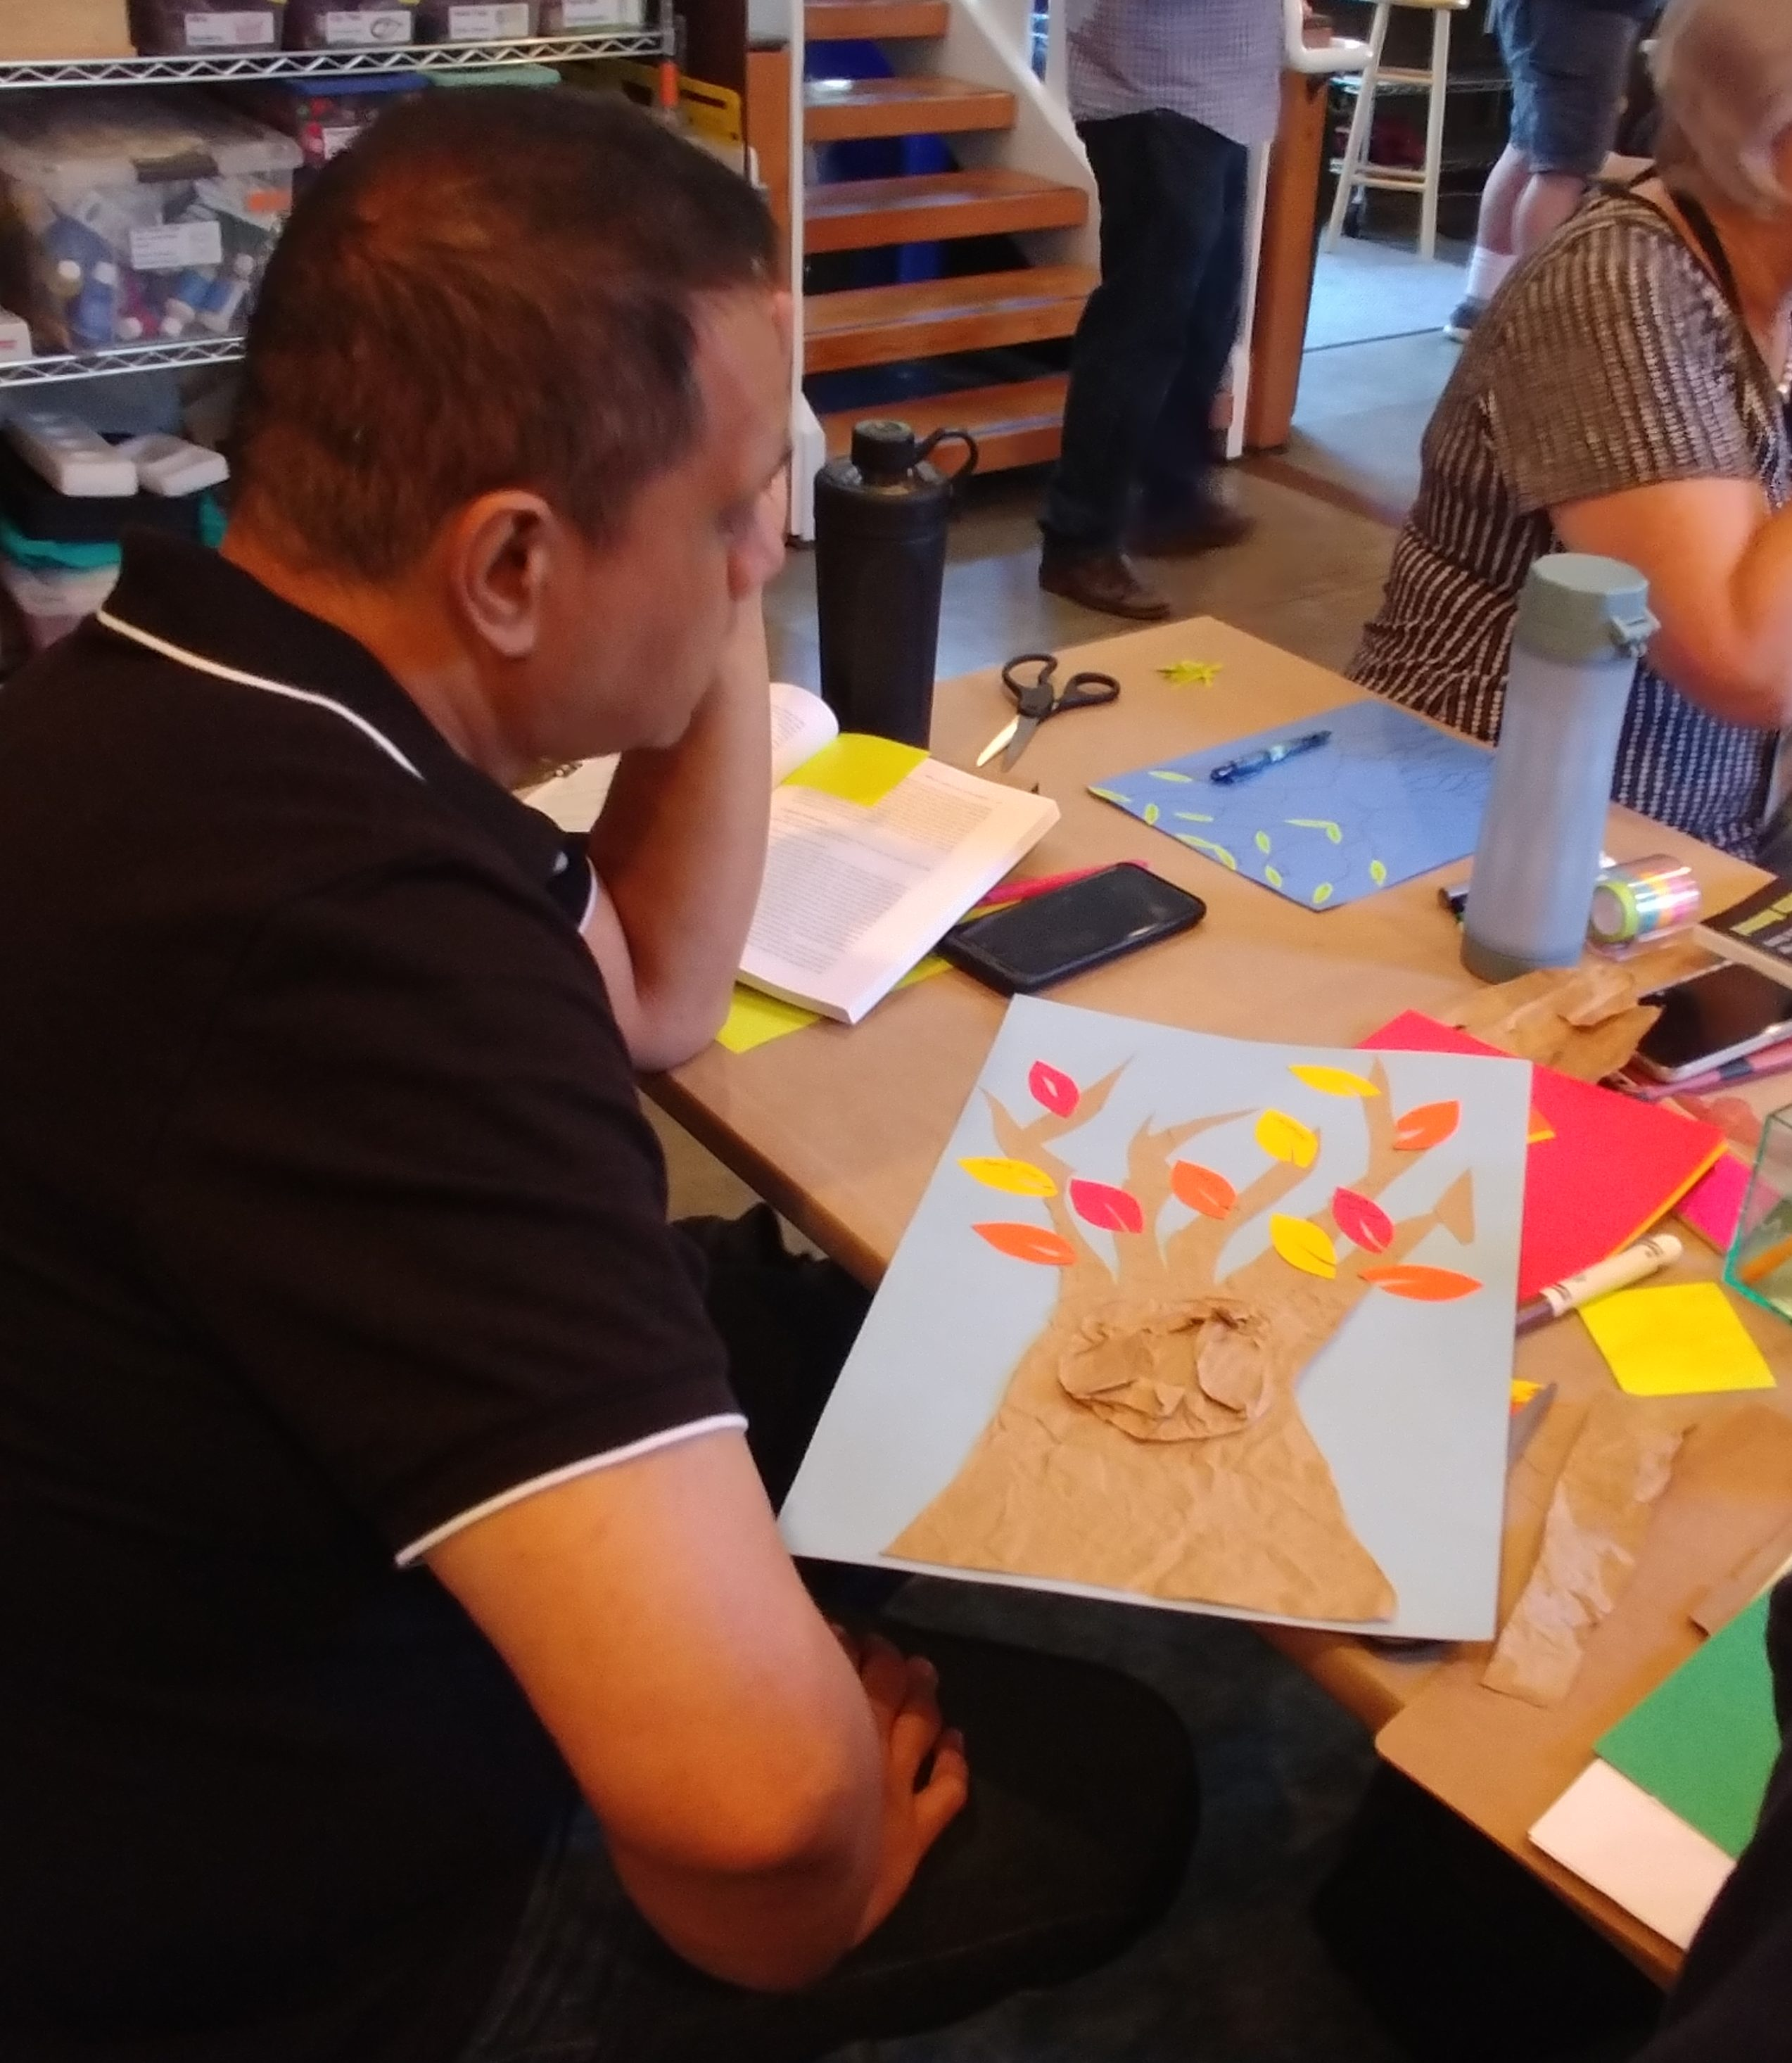 Elson, a male workshop attendee, contemplates his culture tree. His tree is made of brown paper with yellow, red, and orange leaves on a blue background.